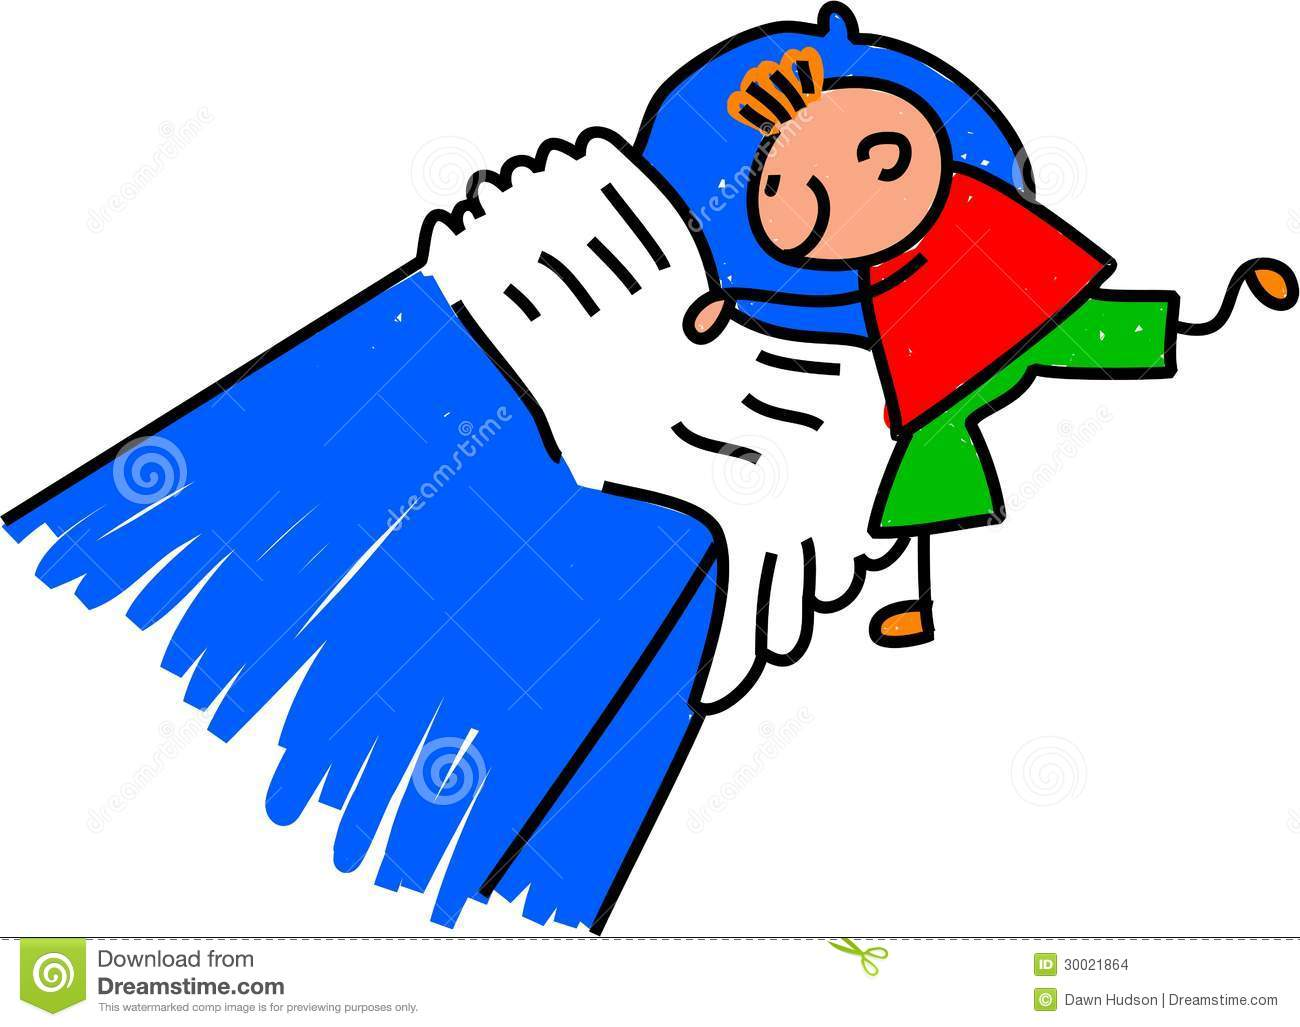 Bedding Making Bed Clip Art Clipartfest Clipart Bugs.